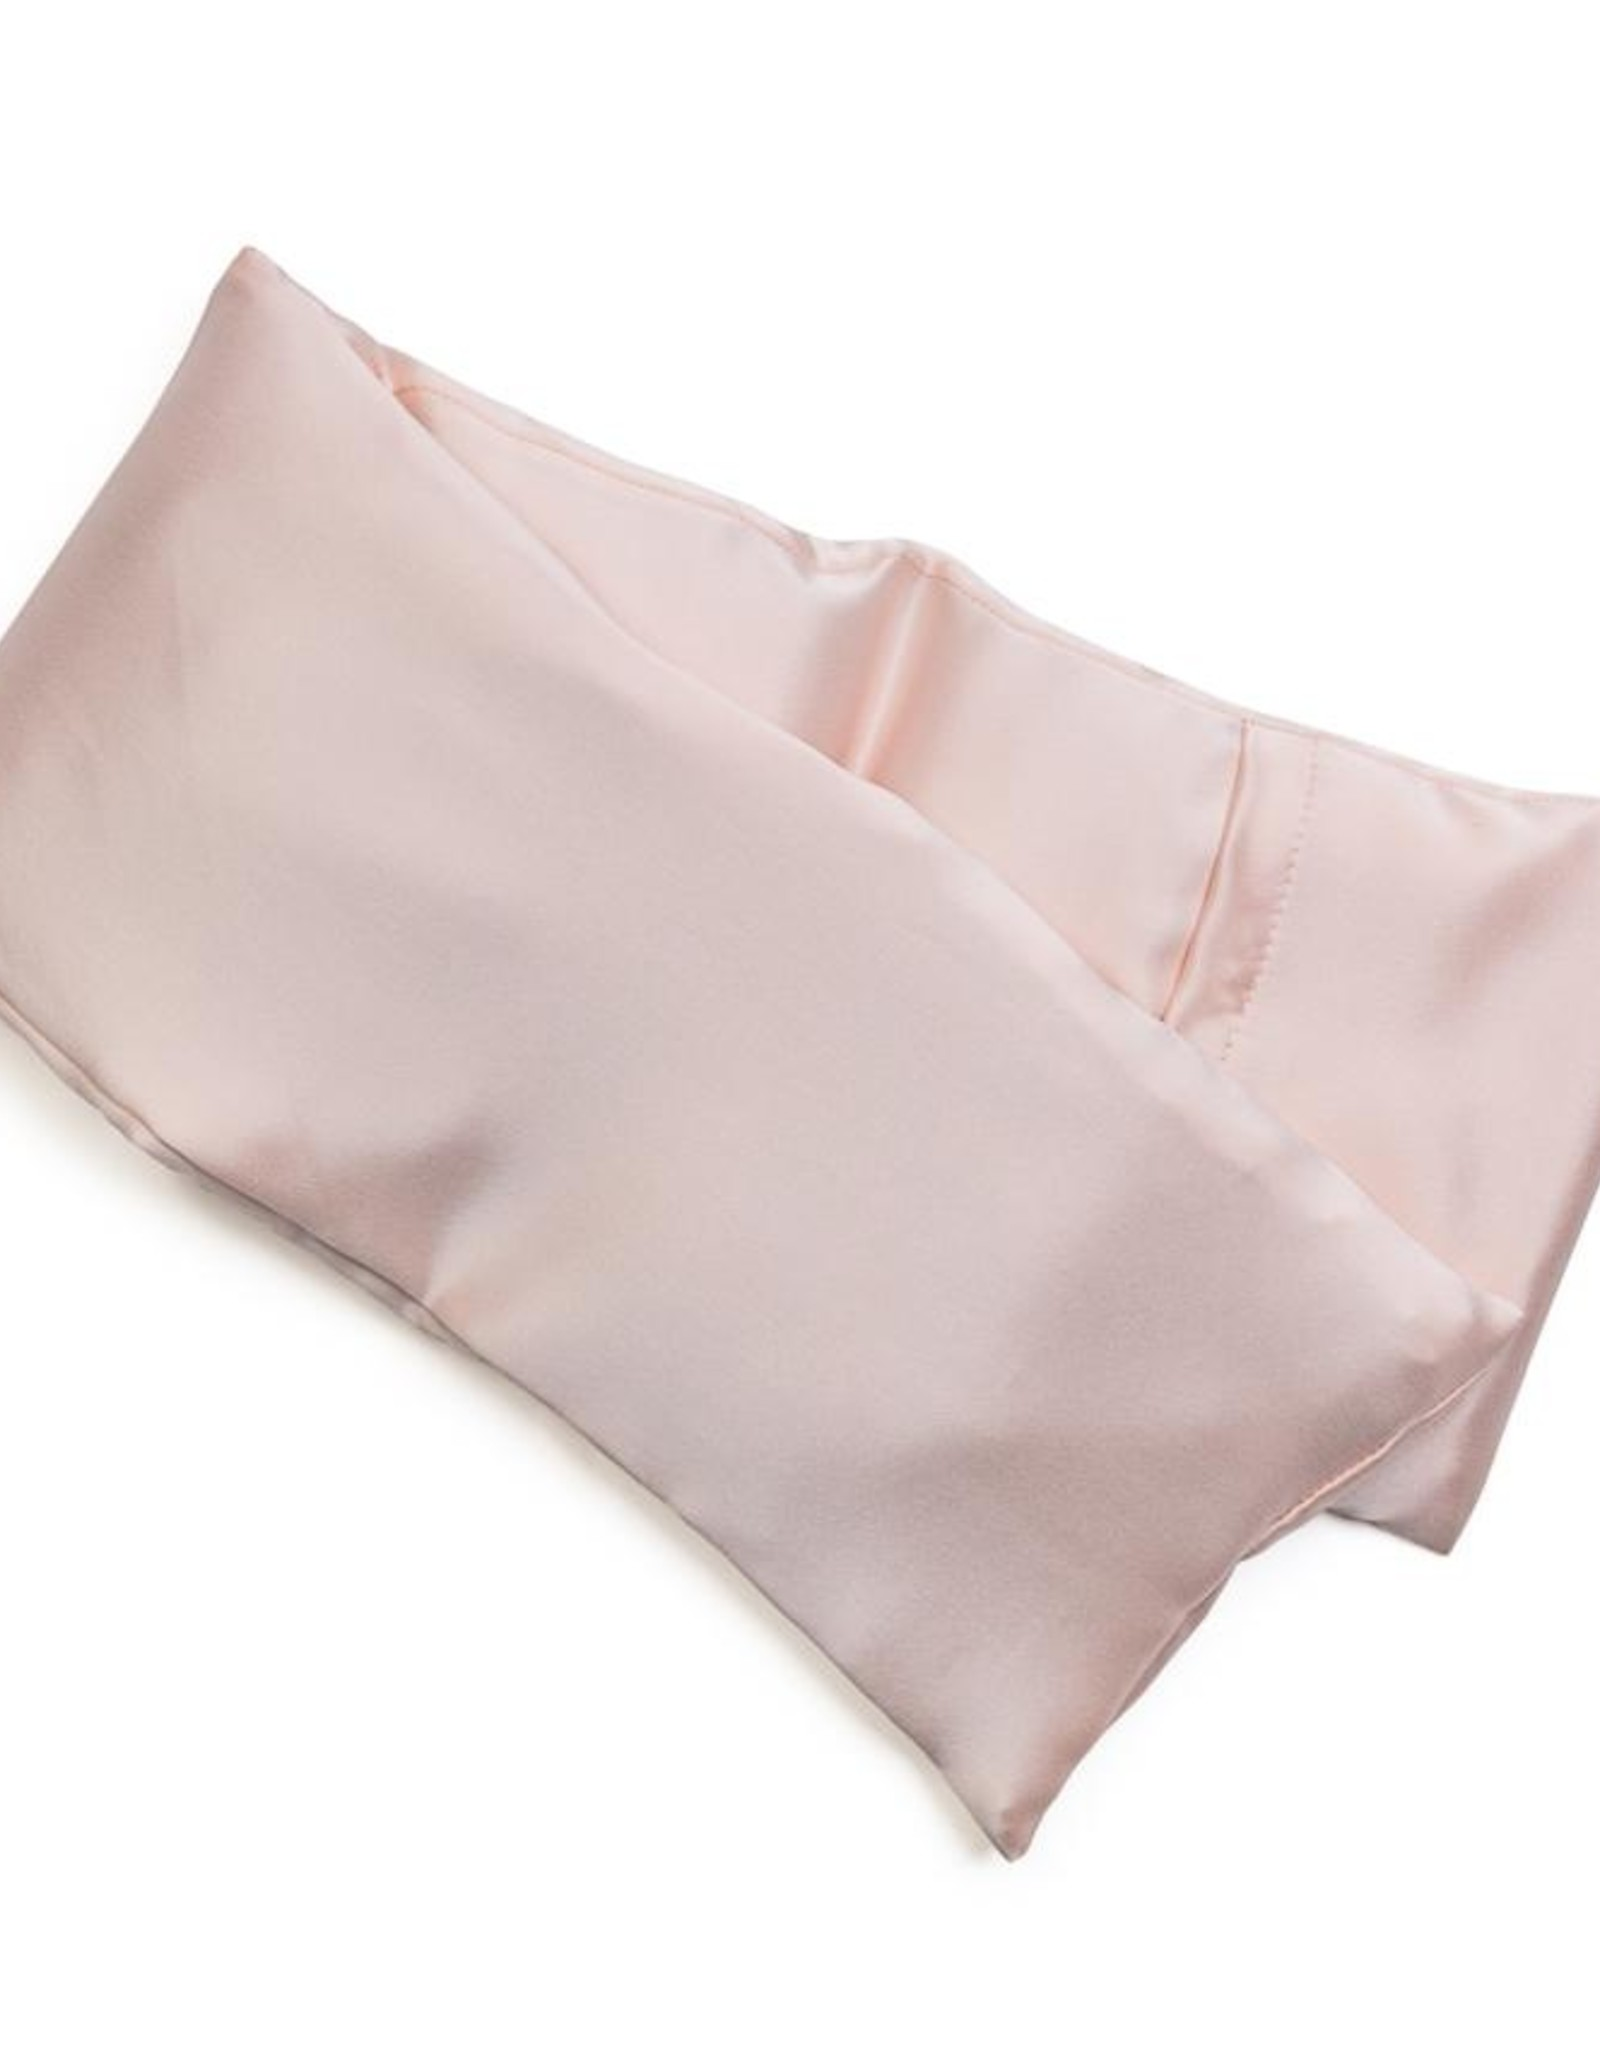 Elizabeth W Hot/Cold Flaxseed Pack, Pink Silk